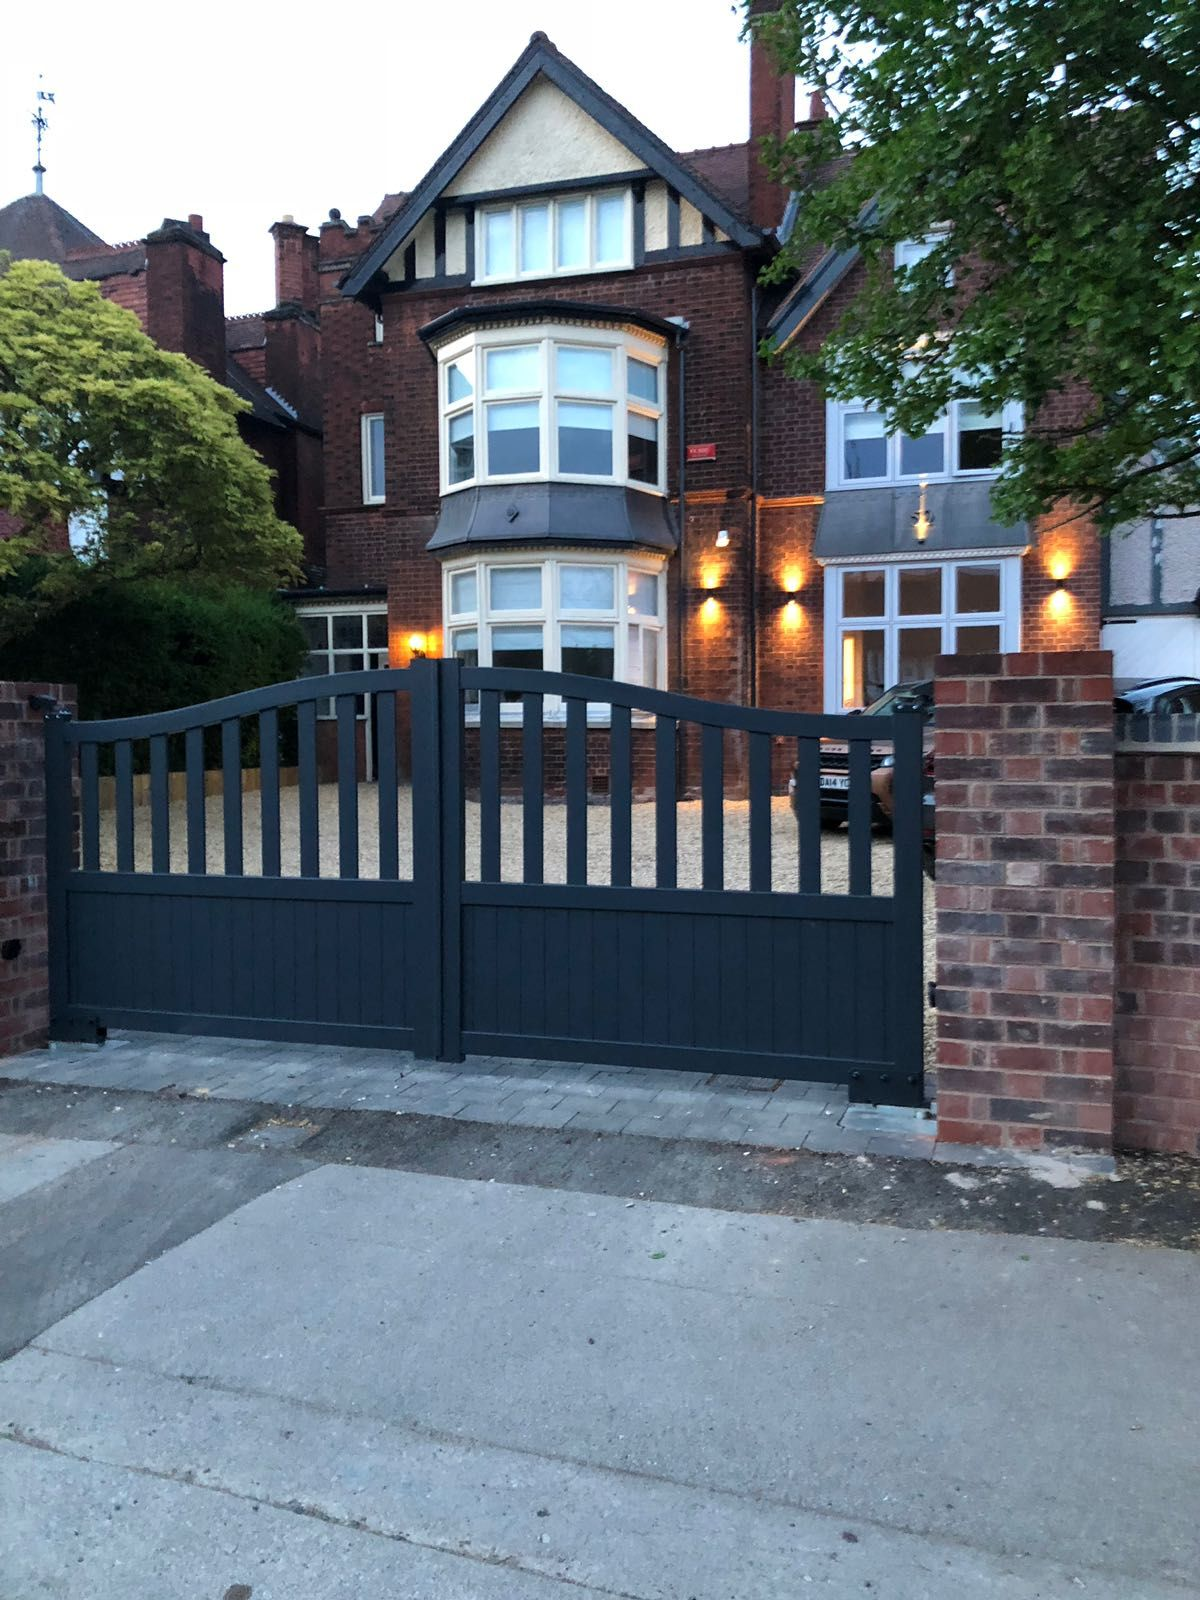 Open infill aluminium driveway gates fitted to entrance of large Victorian property